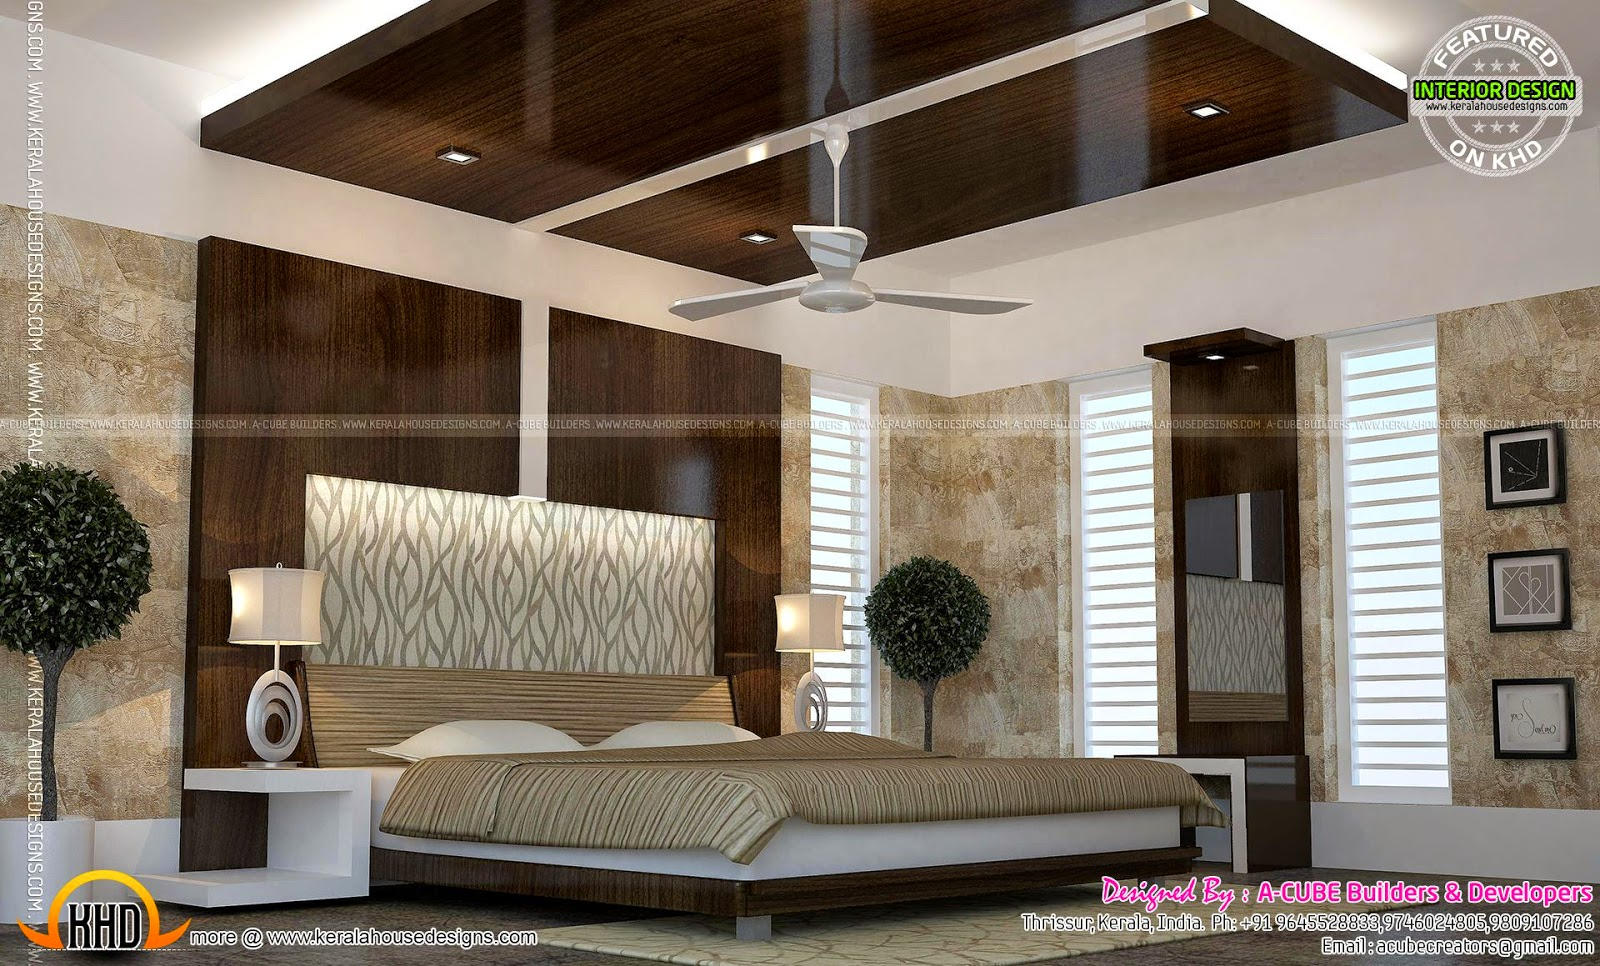 Kerala interior design ideas kerala home design and for Interior designs in home